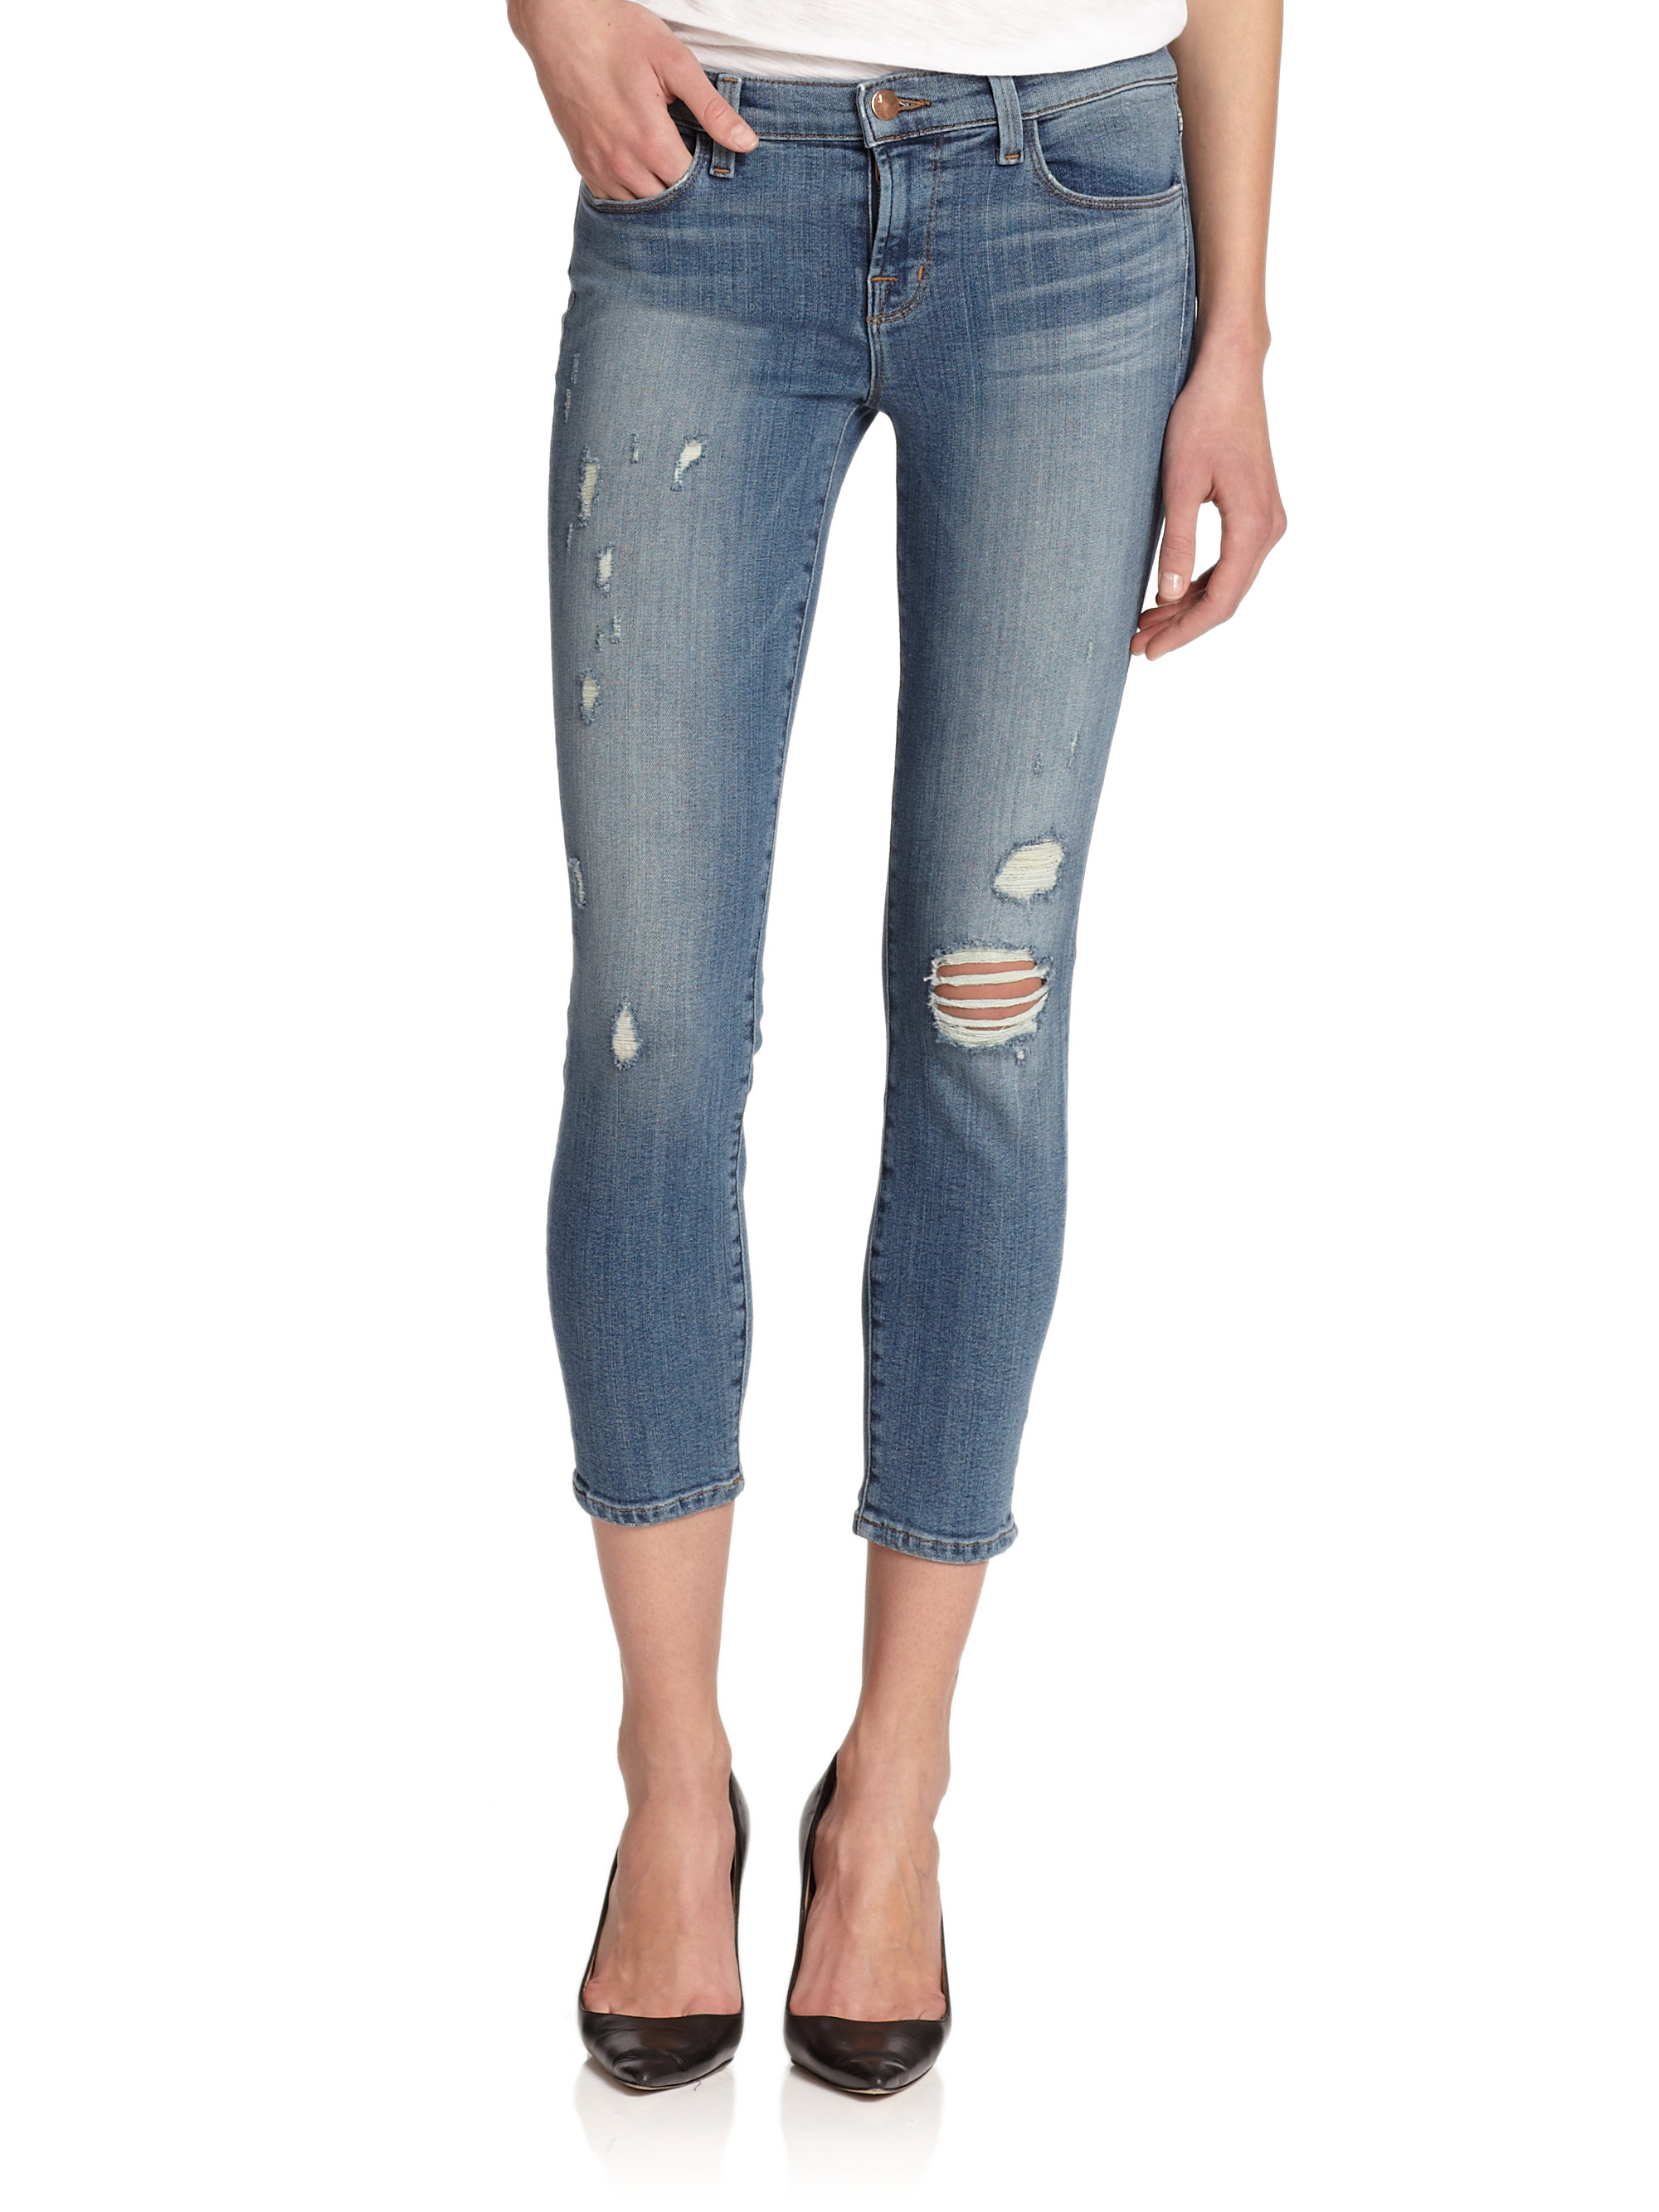 Sale Visit New 835 Distressed Cropped Mid-rise Skinny Jeans - Black J Brand Sale Cheap Extremely For Sale Clearance Best Sale 5vEK2Ml